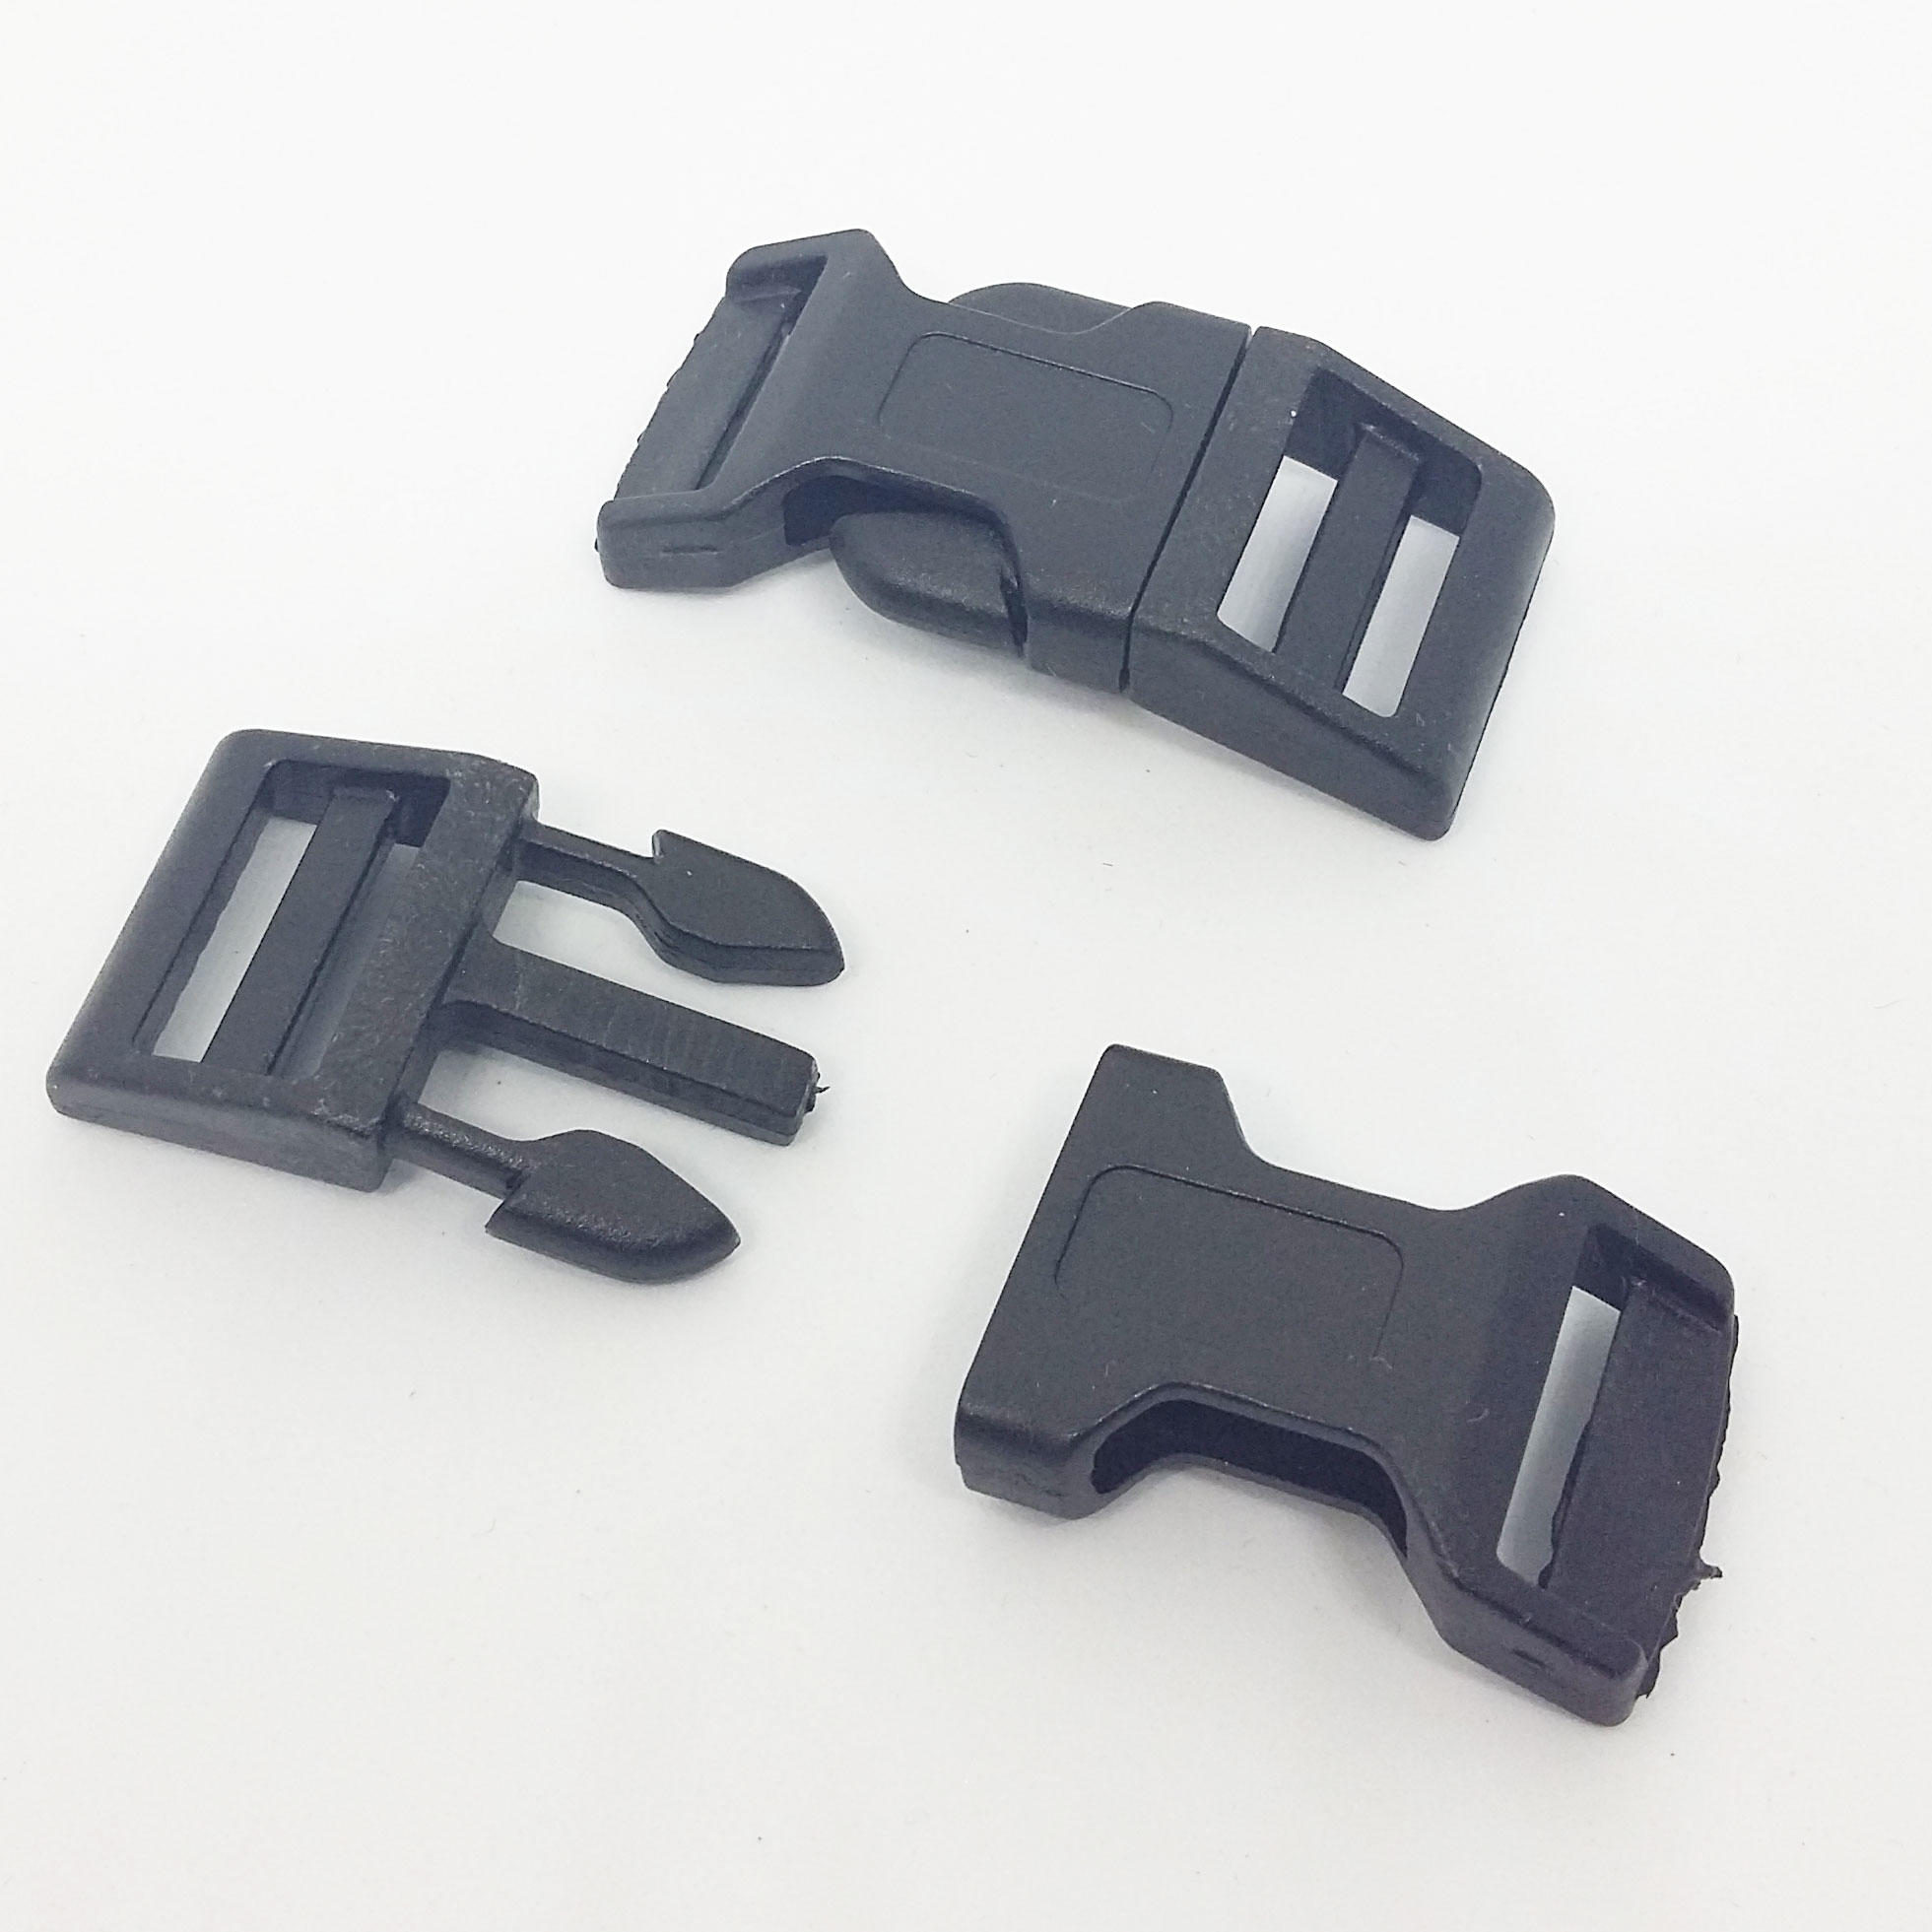 40x20x7mm Plastic Side Release Buckle - Black